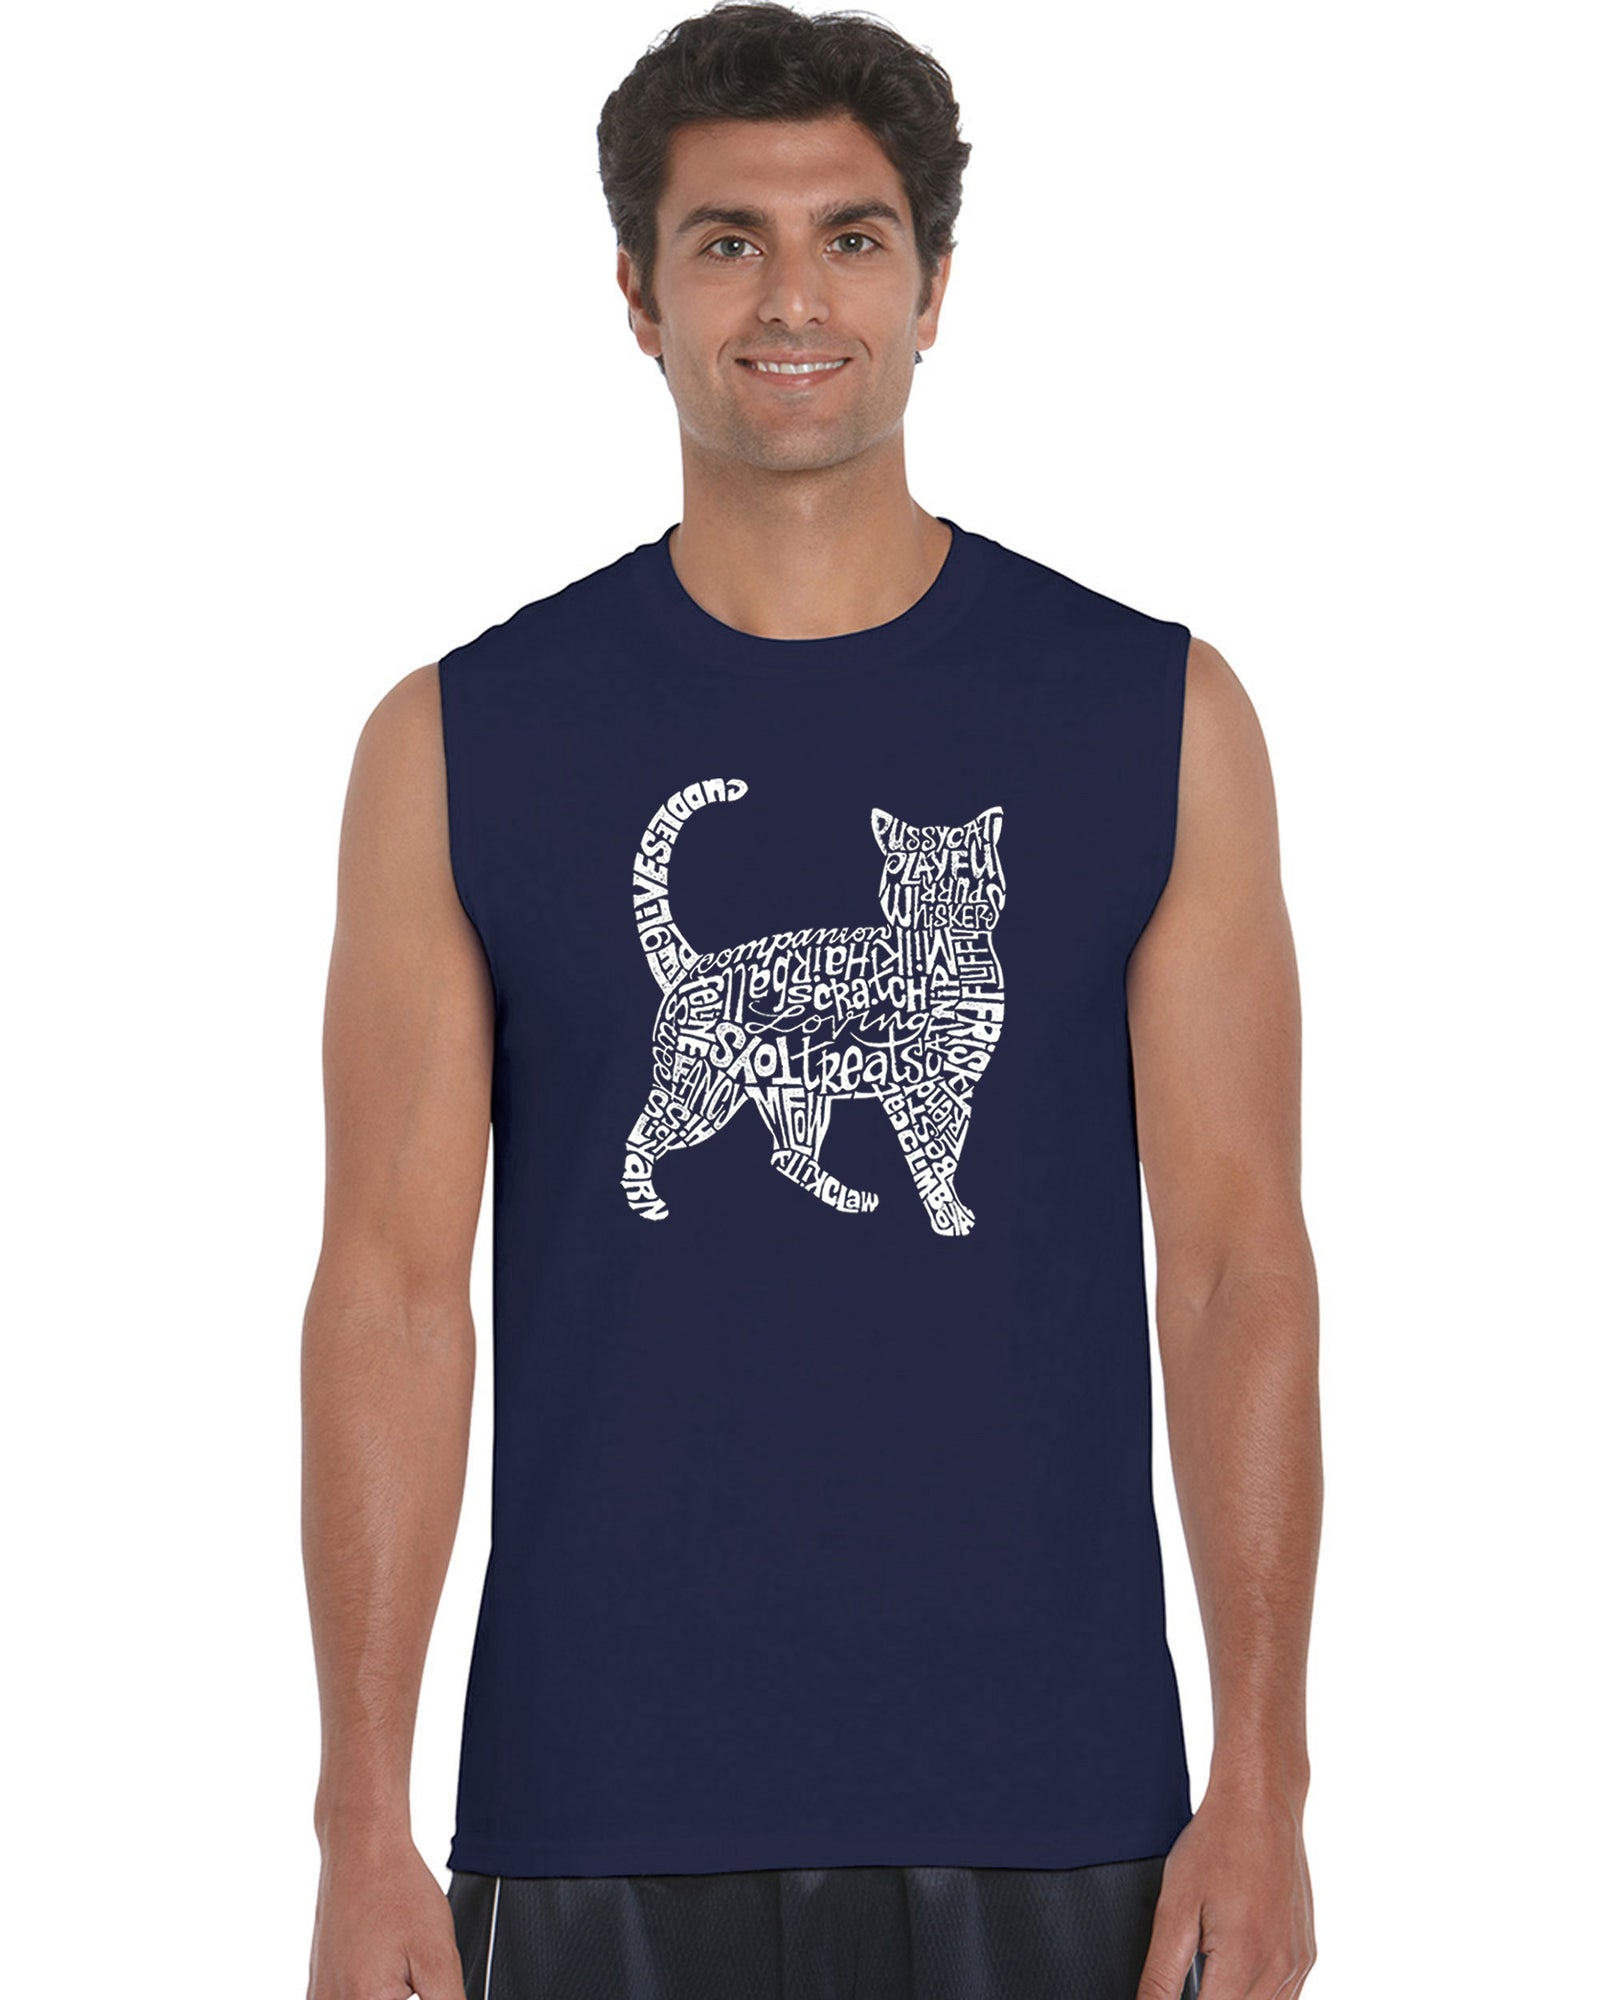 Men's Sleeveless T-shirt - Cat